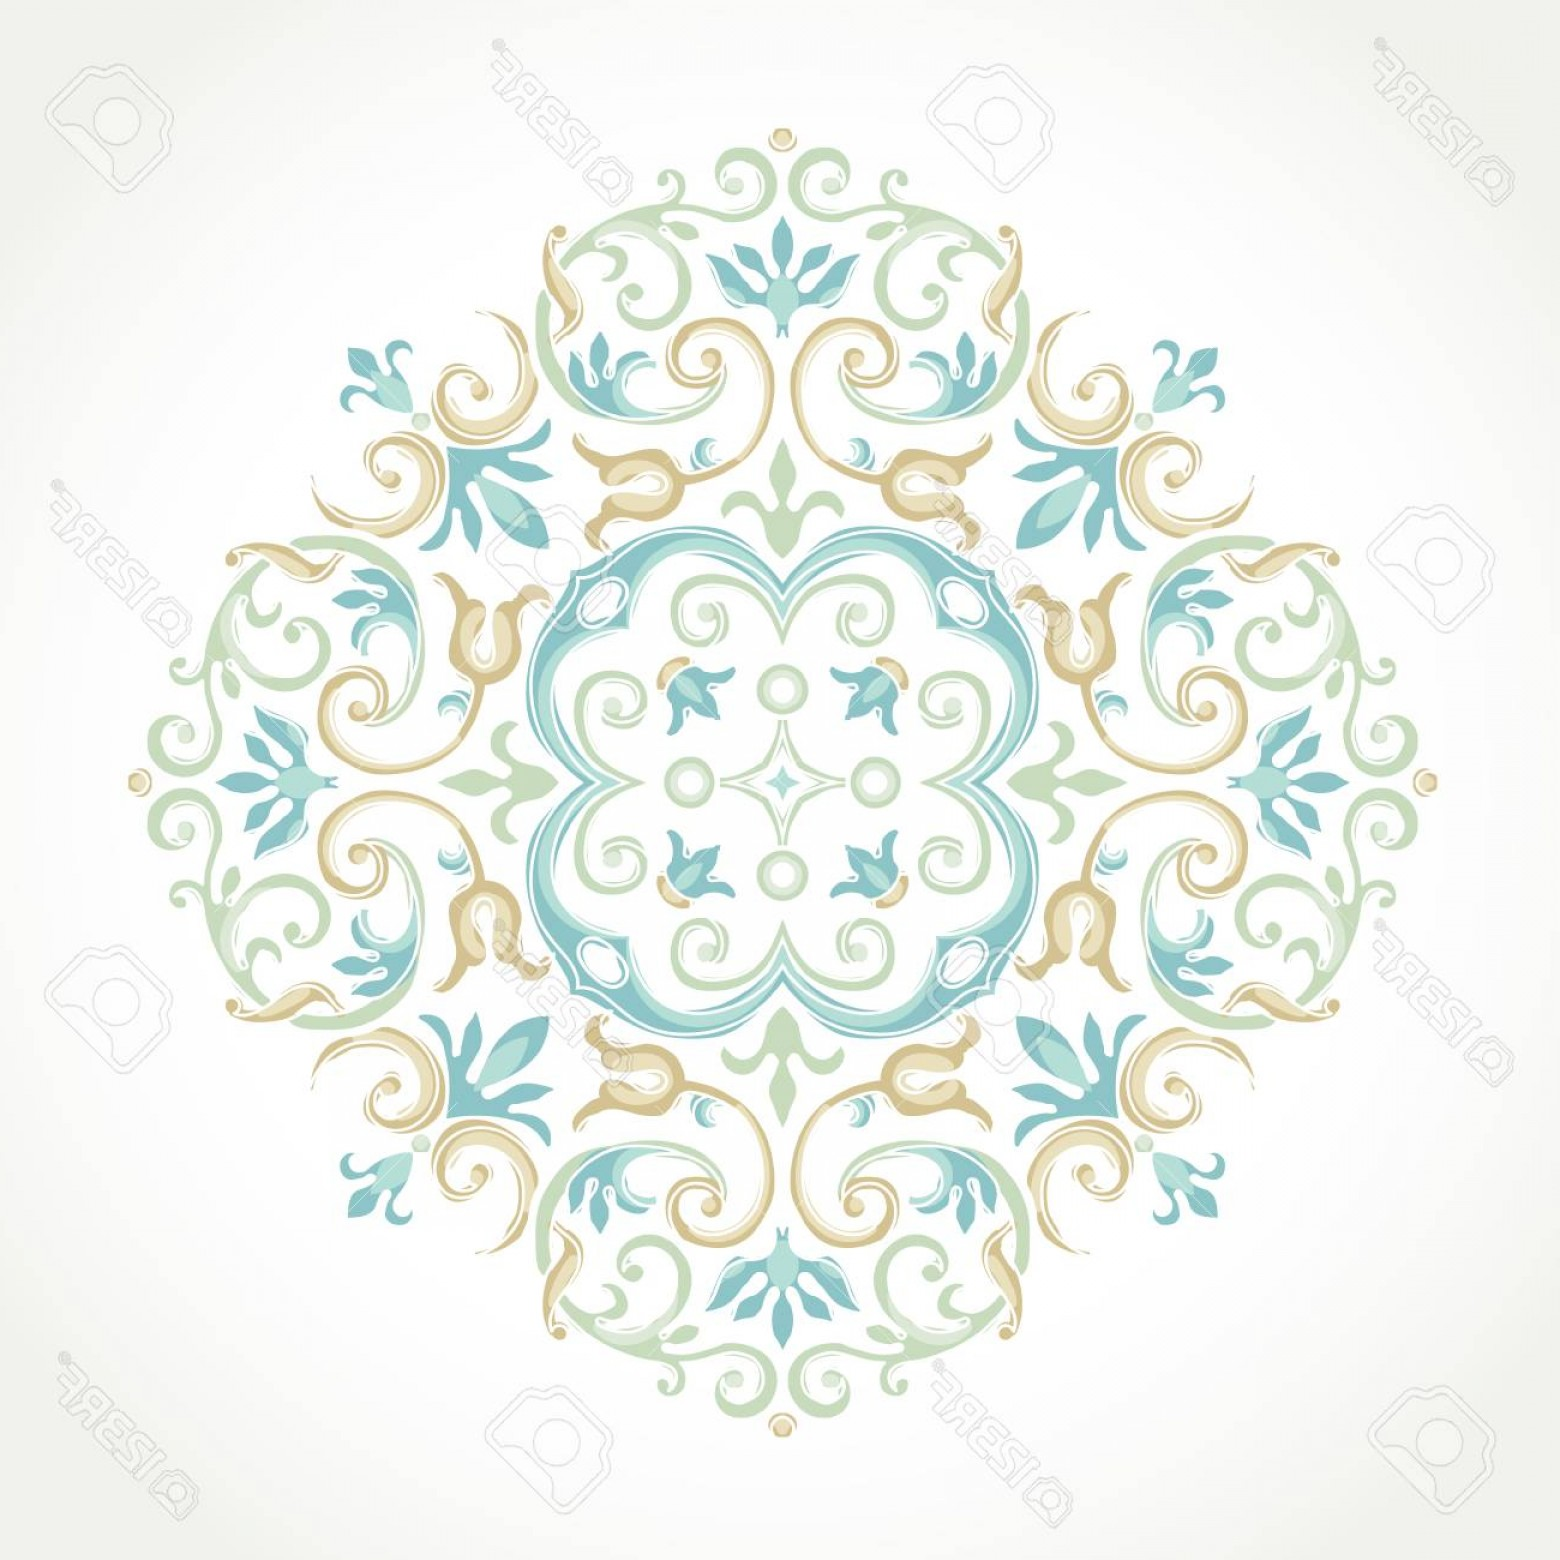 Aqua Victorian Vectors: Photostock Vector Vector Vintage Pattern In Victorian Style Ornate Floral Element For Design Ornament Pattern For Wedd